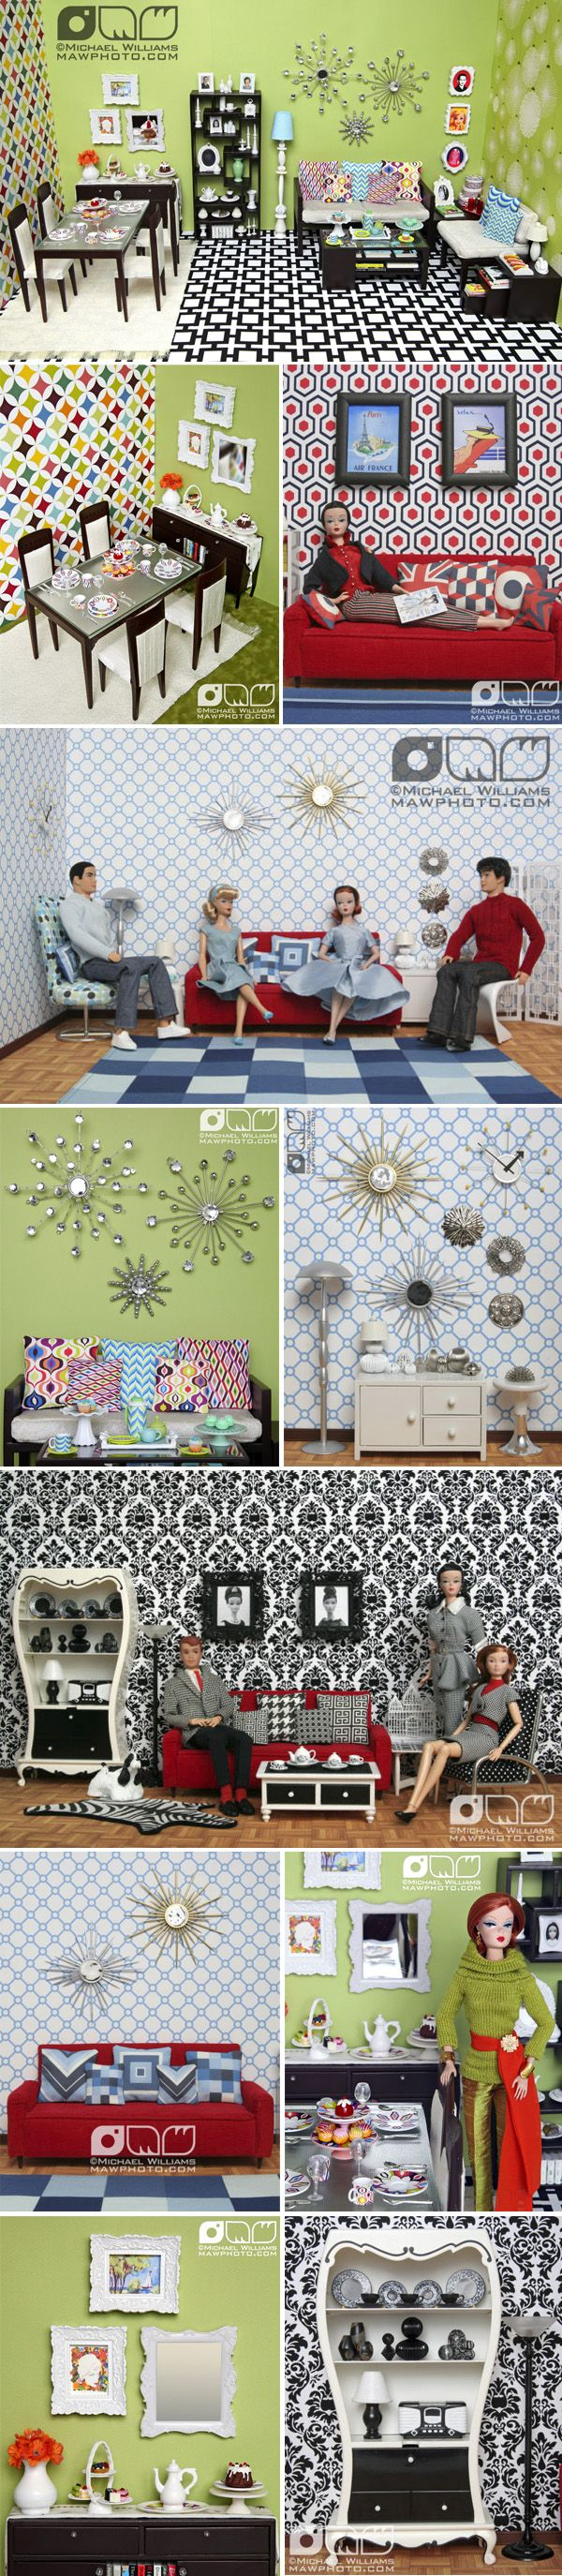 cool inspiration for bookshelf doll house use scrapbook paper and quilt cloth